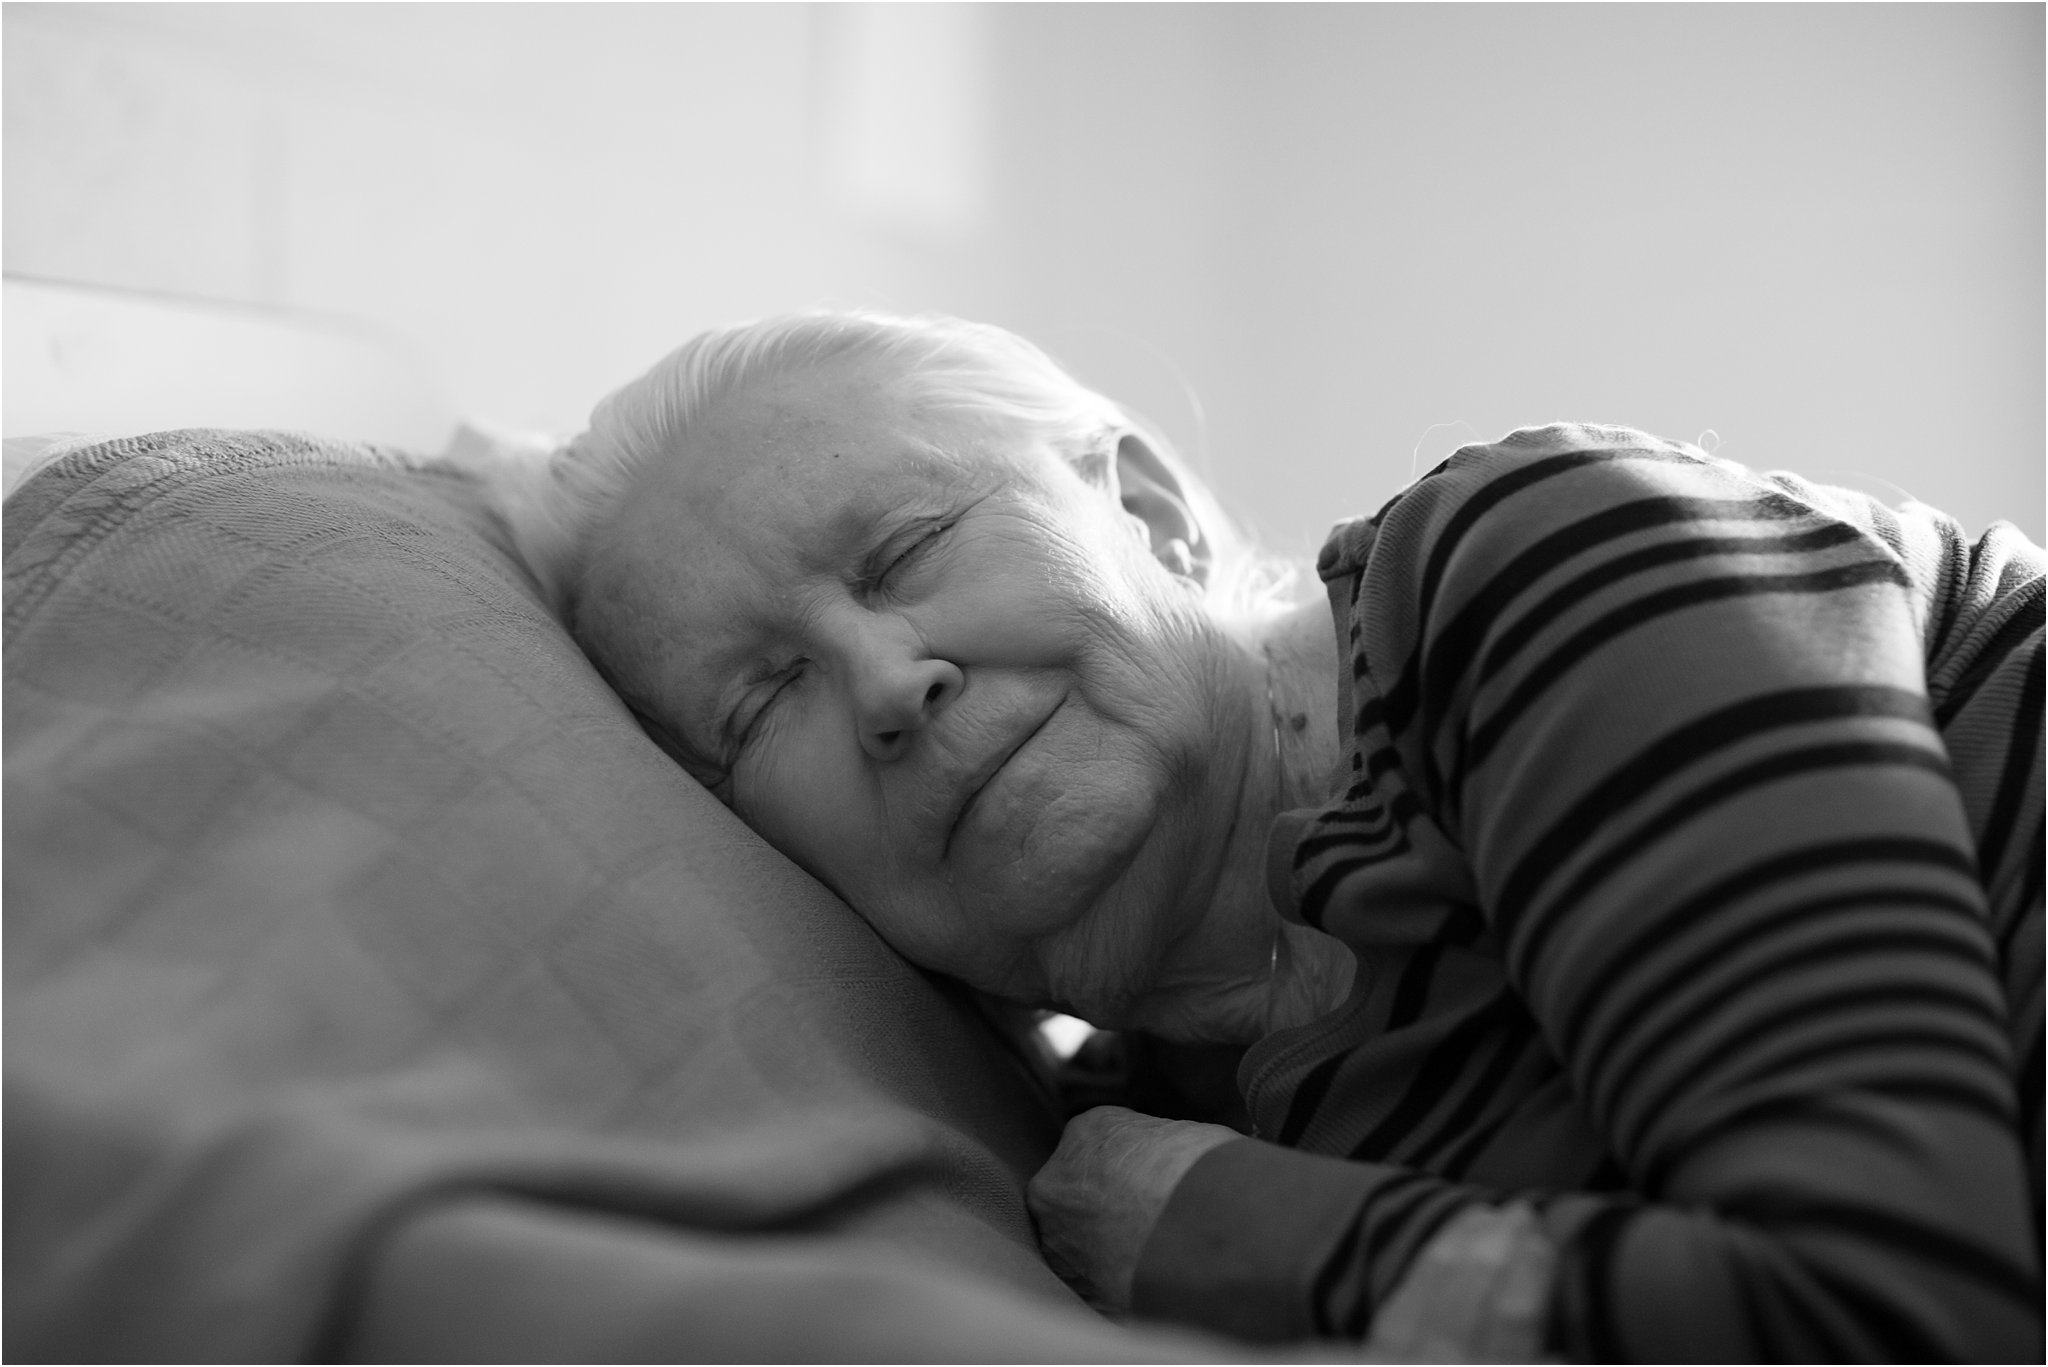 Portrait of Elderly Woman Sleeping